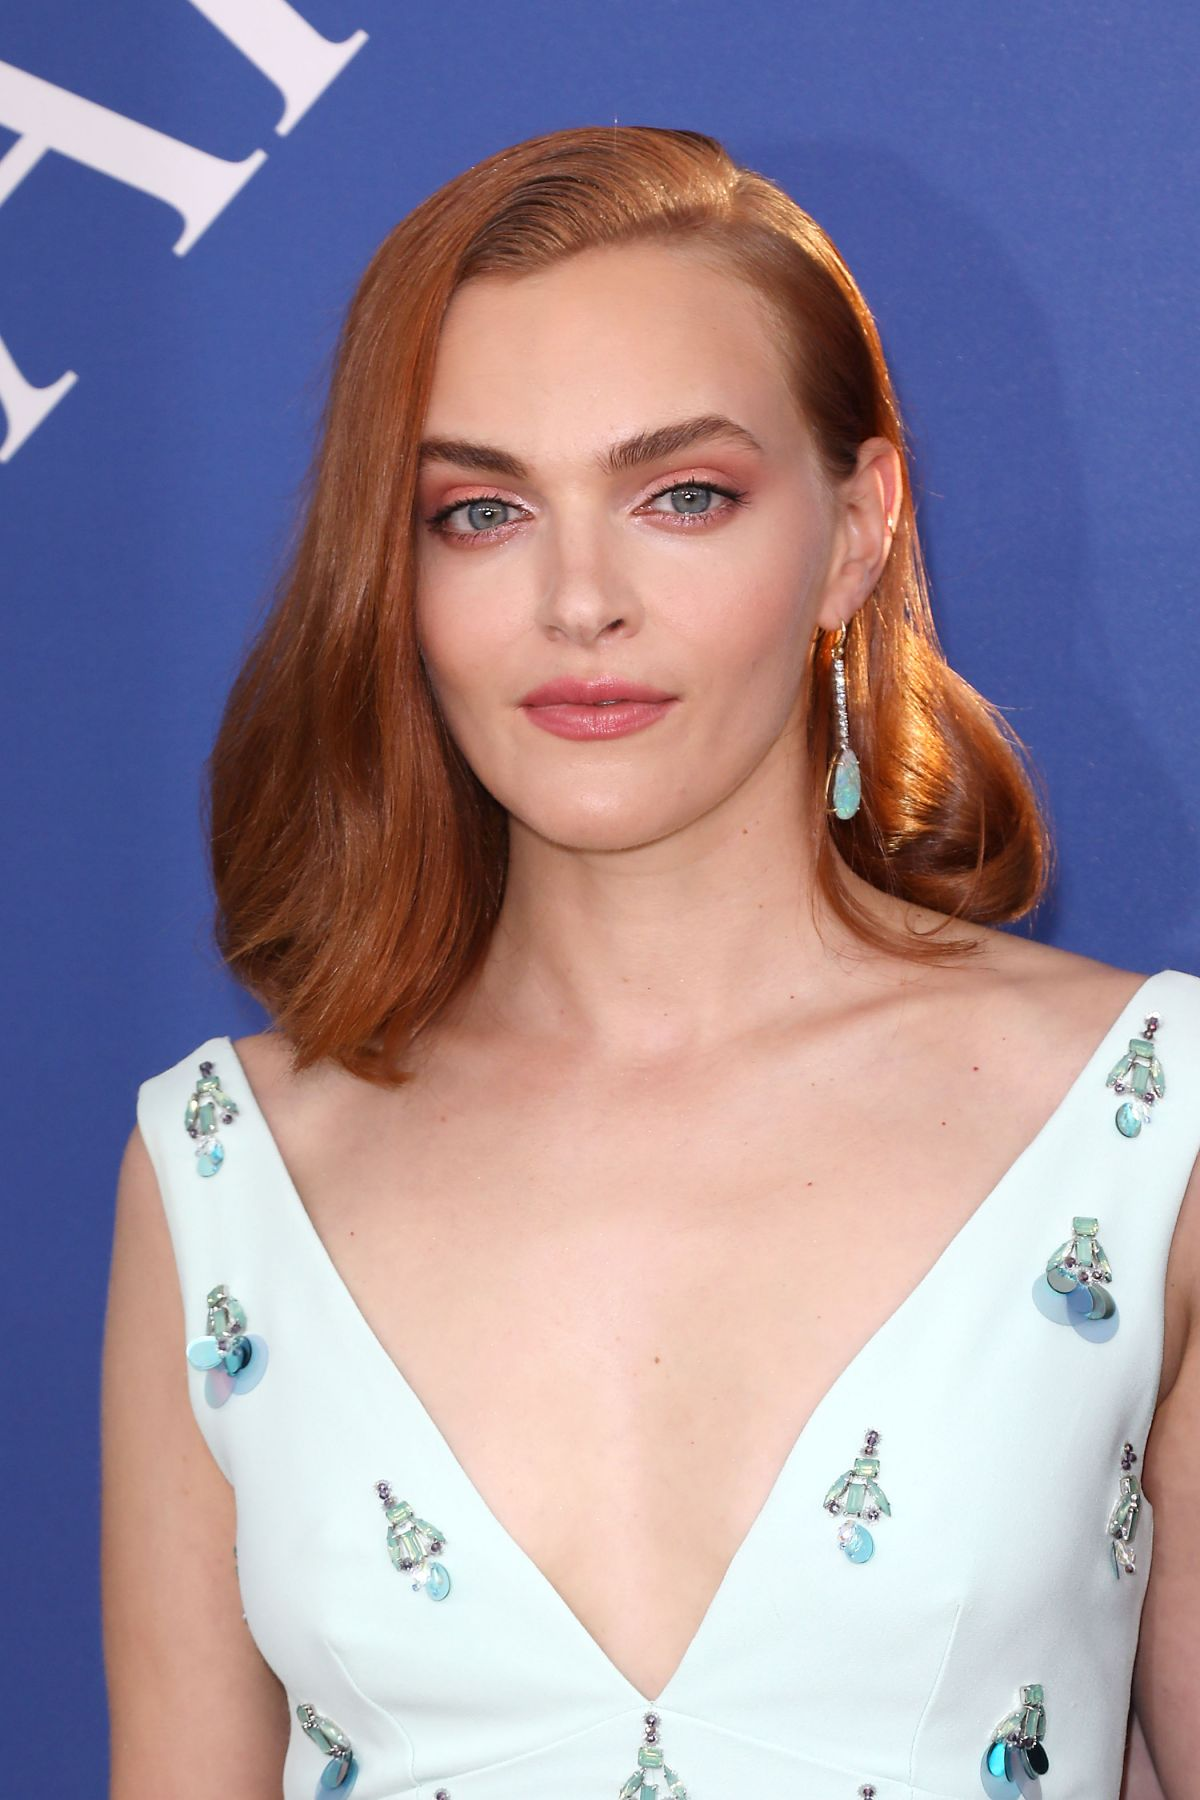 ICloud Madeline Brewer naked (58 foto and video), Ass, Is a cute, Twitter, swimsuit 2015